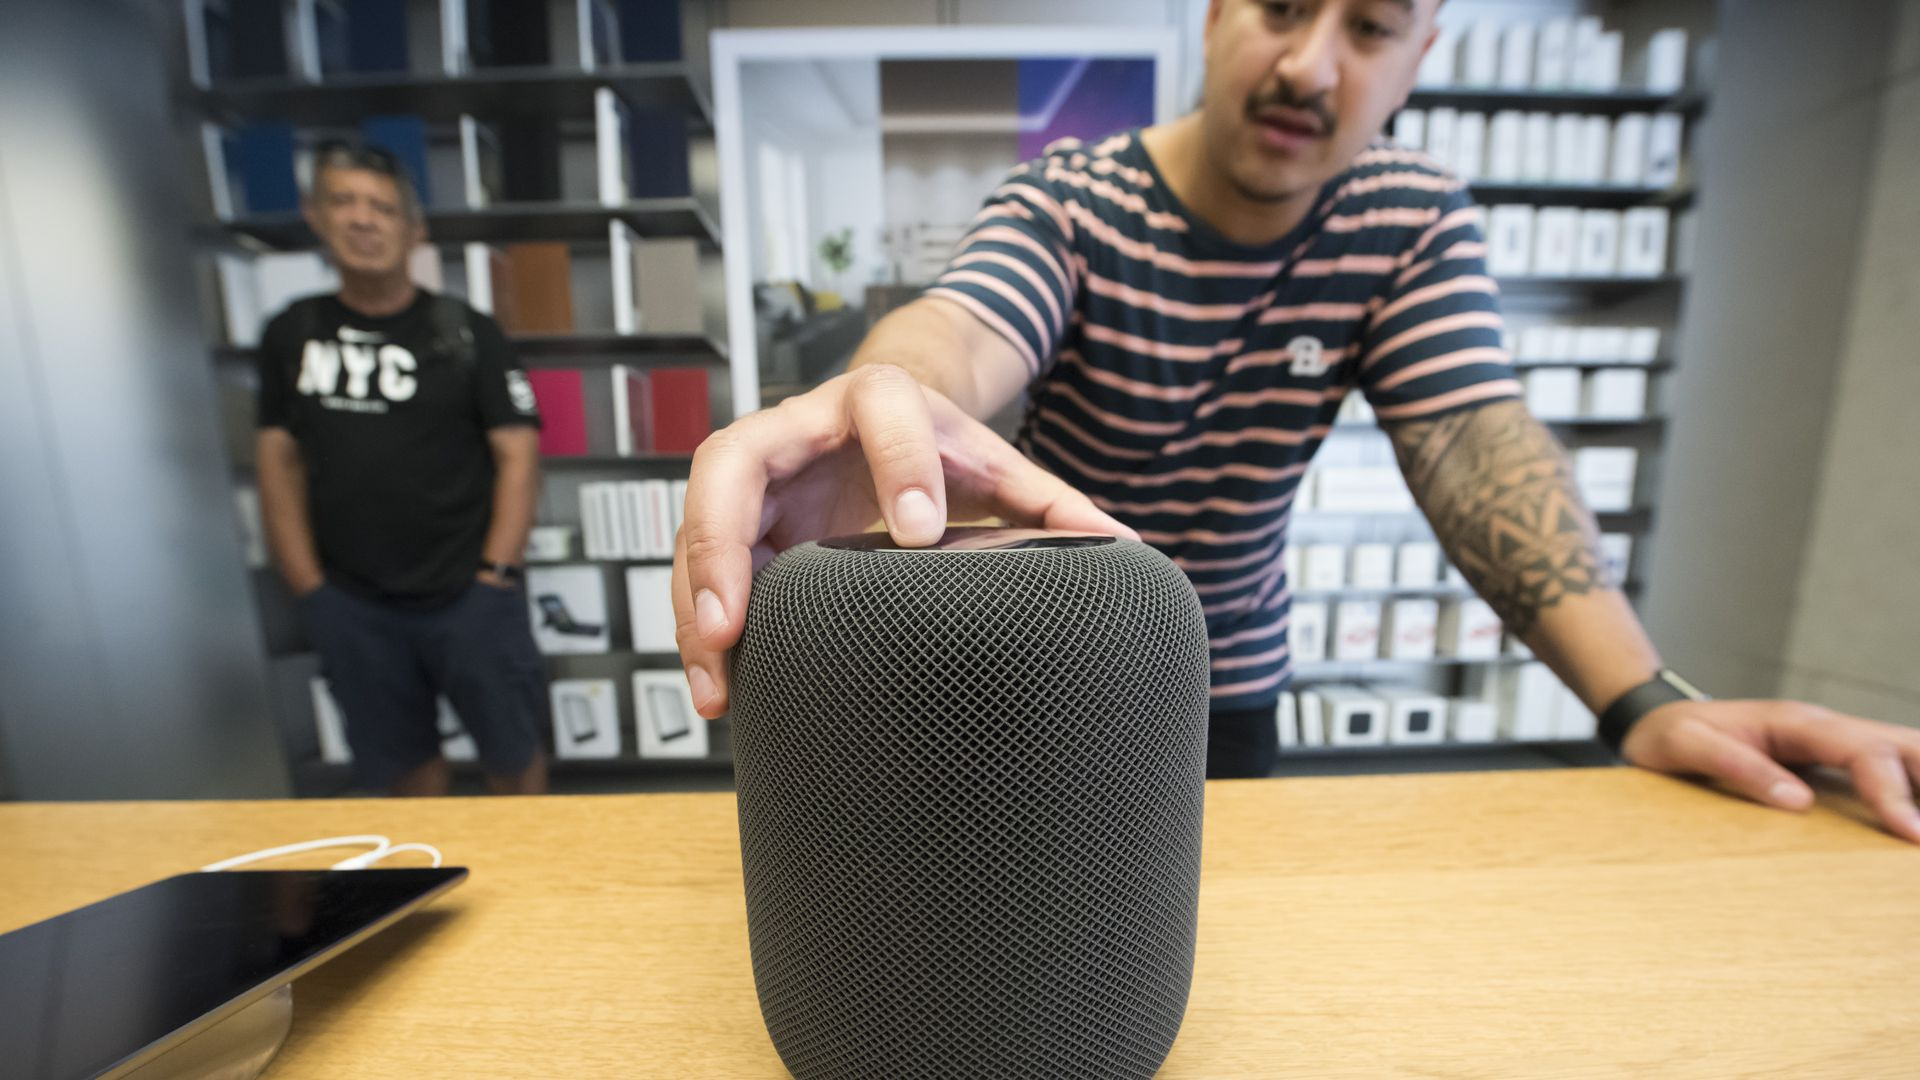 Apple HomePod smart speaker on a table while a man is palming it.